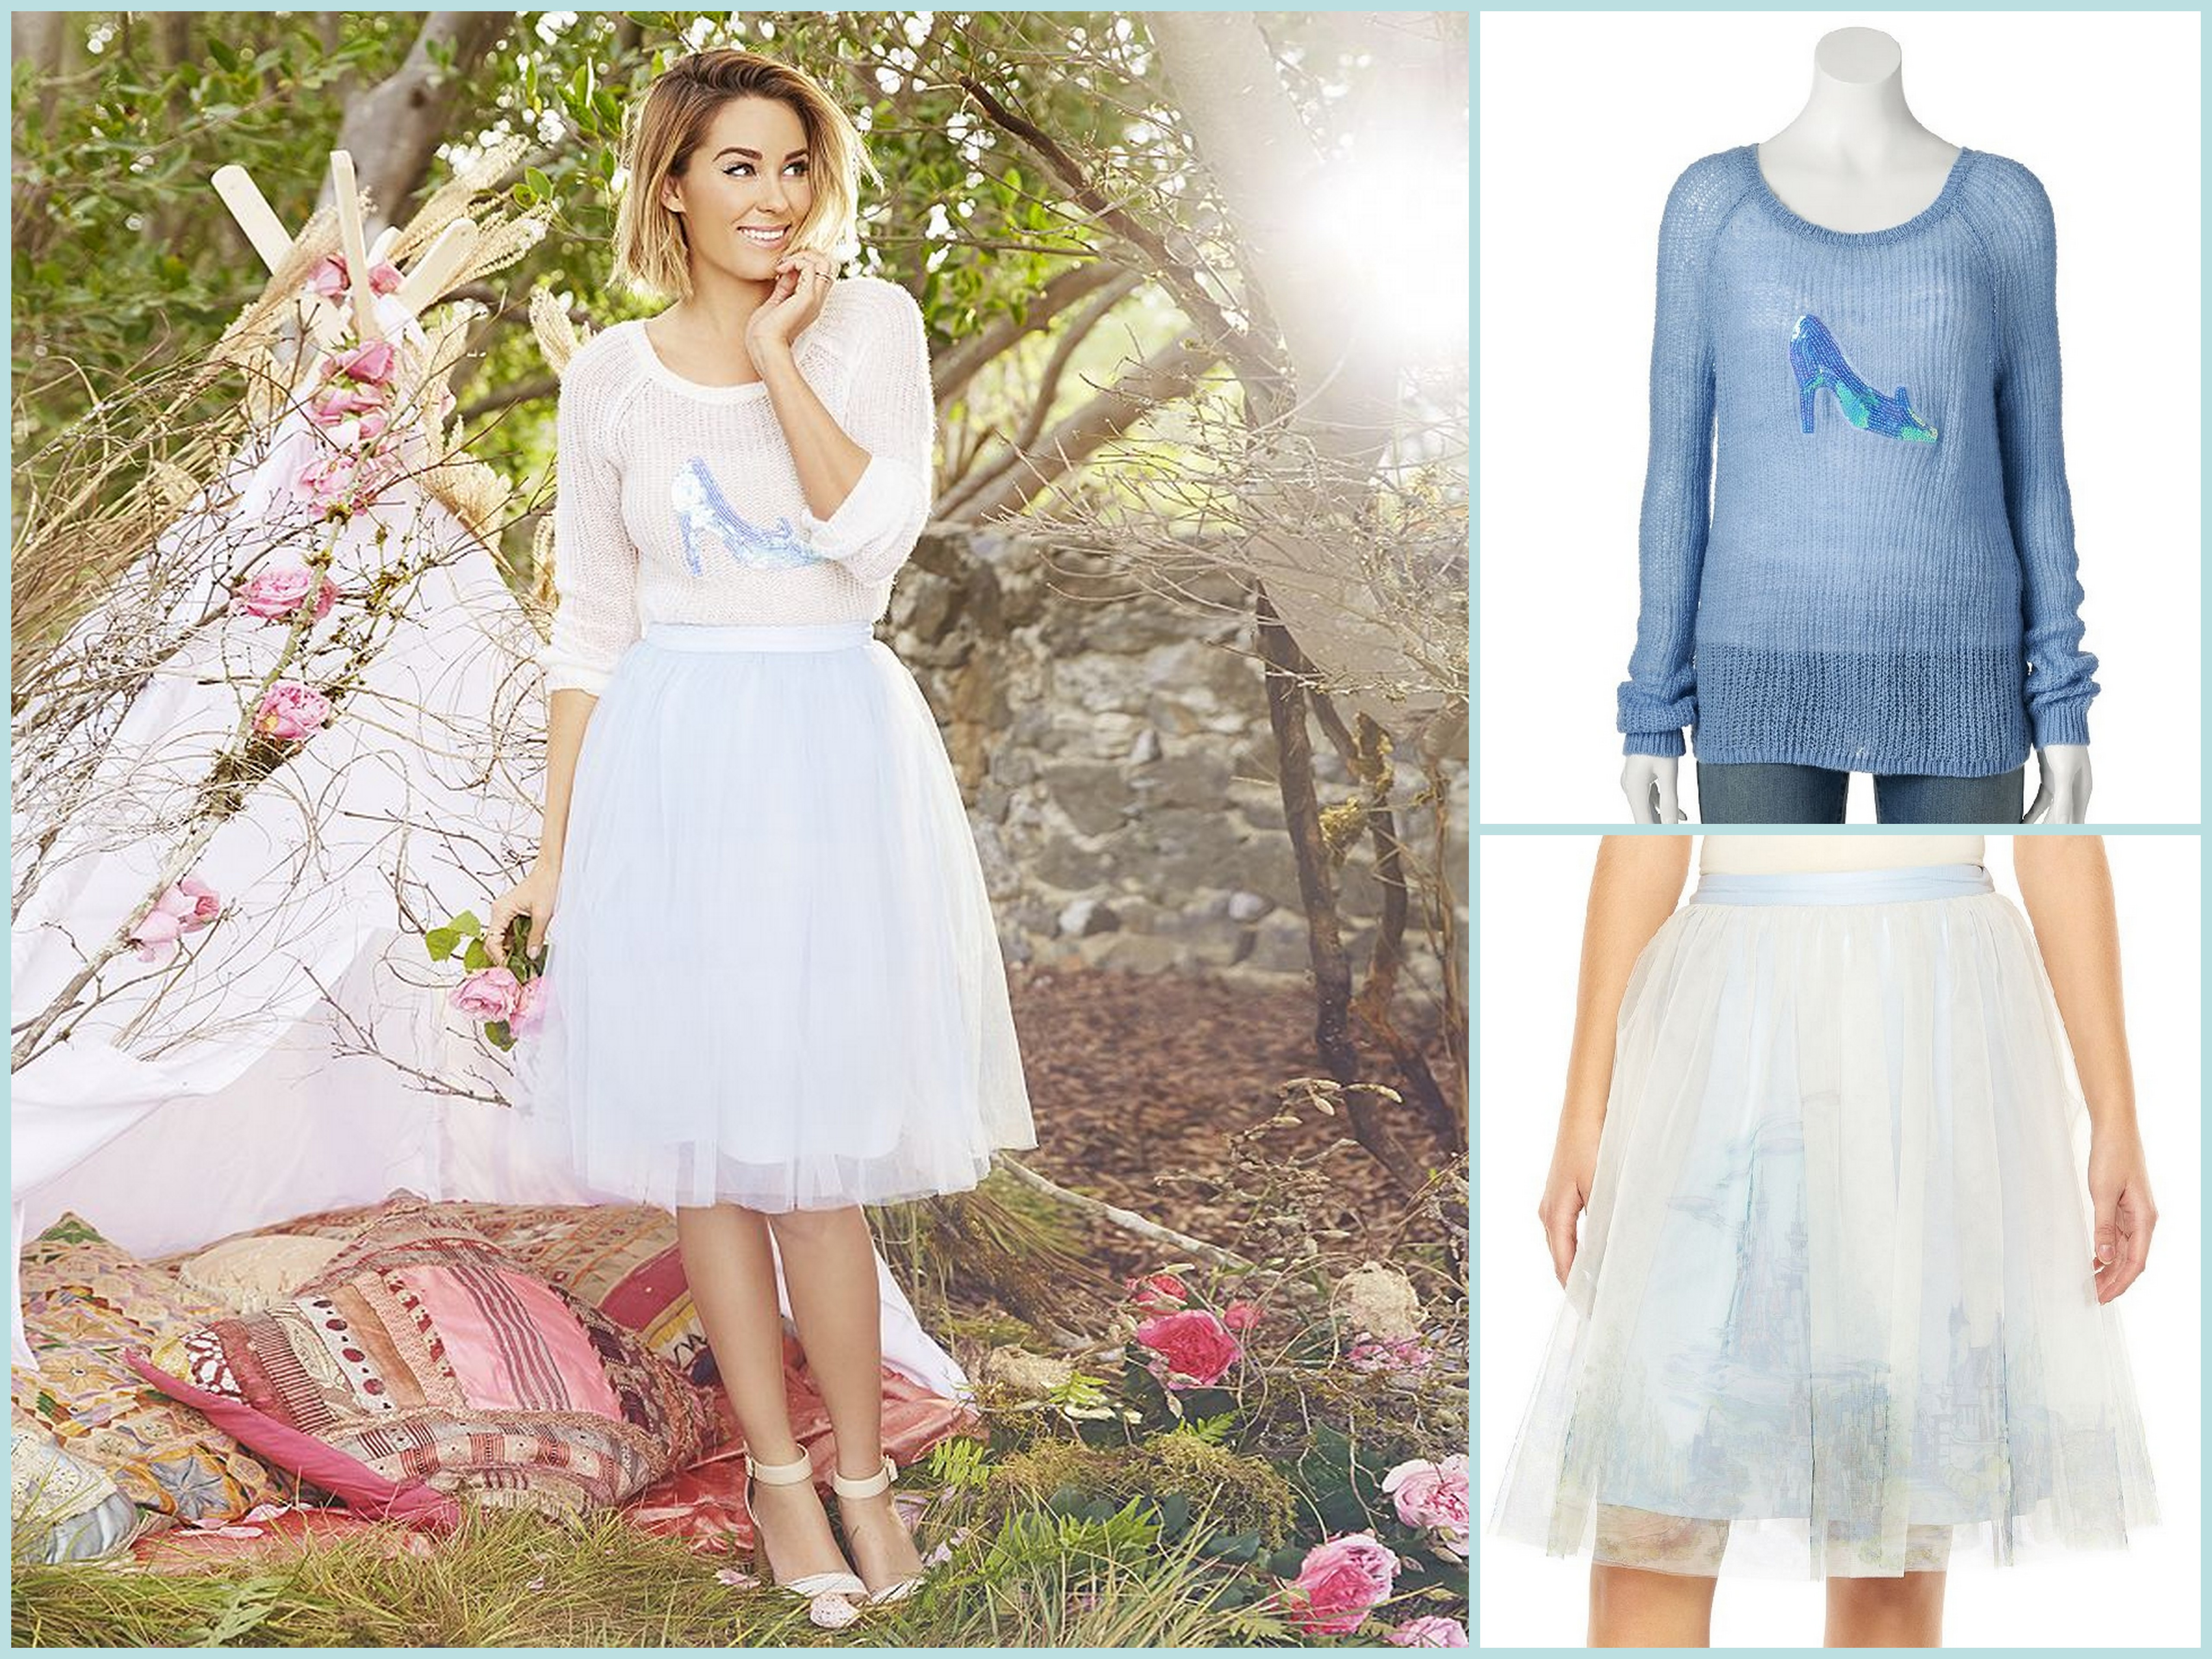 88adff7bf Lauren Conrad designs clothes celebrating Disney's Cinderella. A tulle skirt  and a sweater with a ...